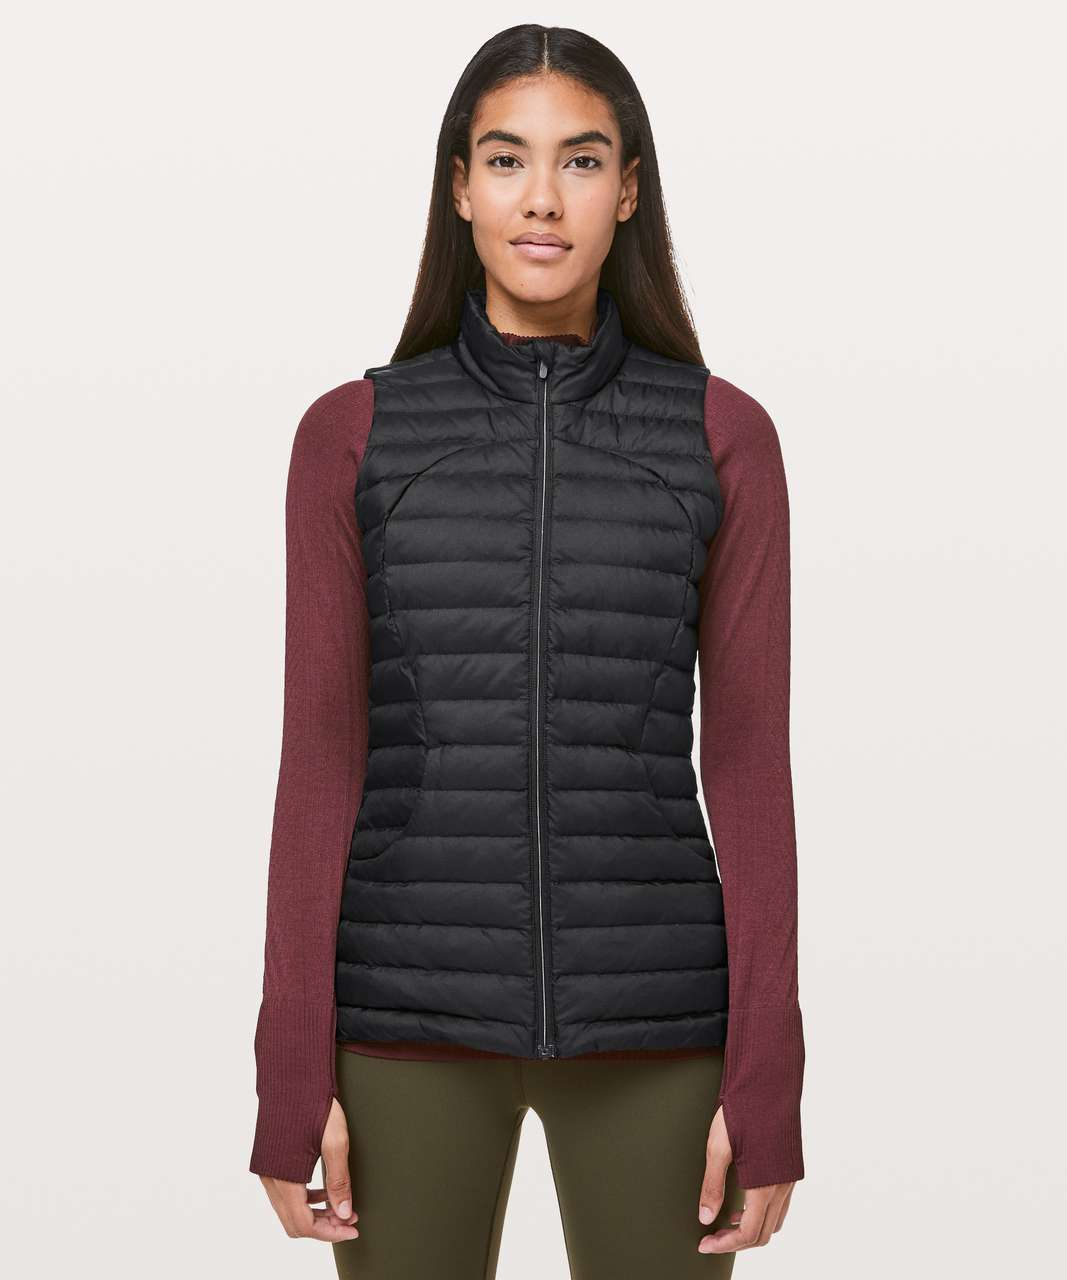 Lululemon Pack It Down Again Vest - Black